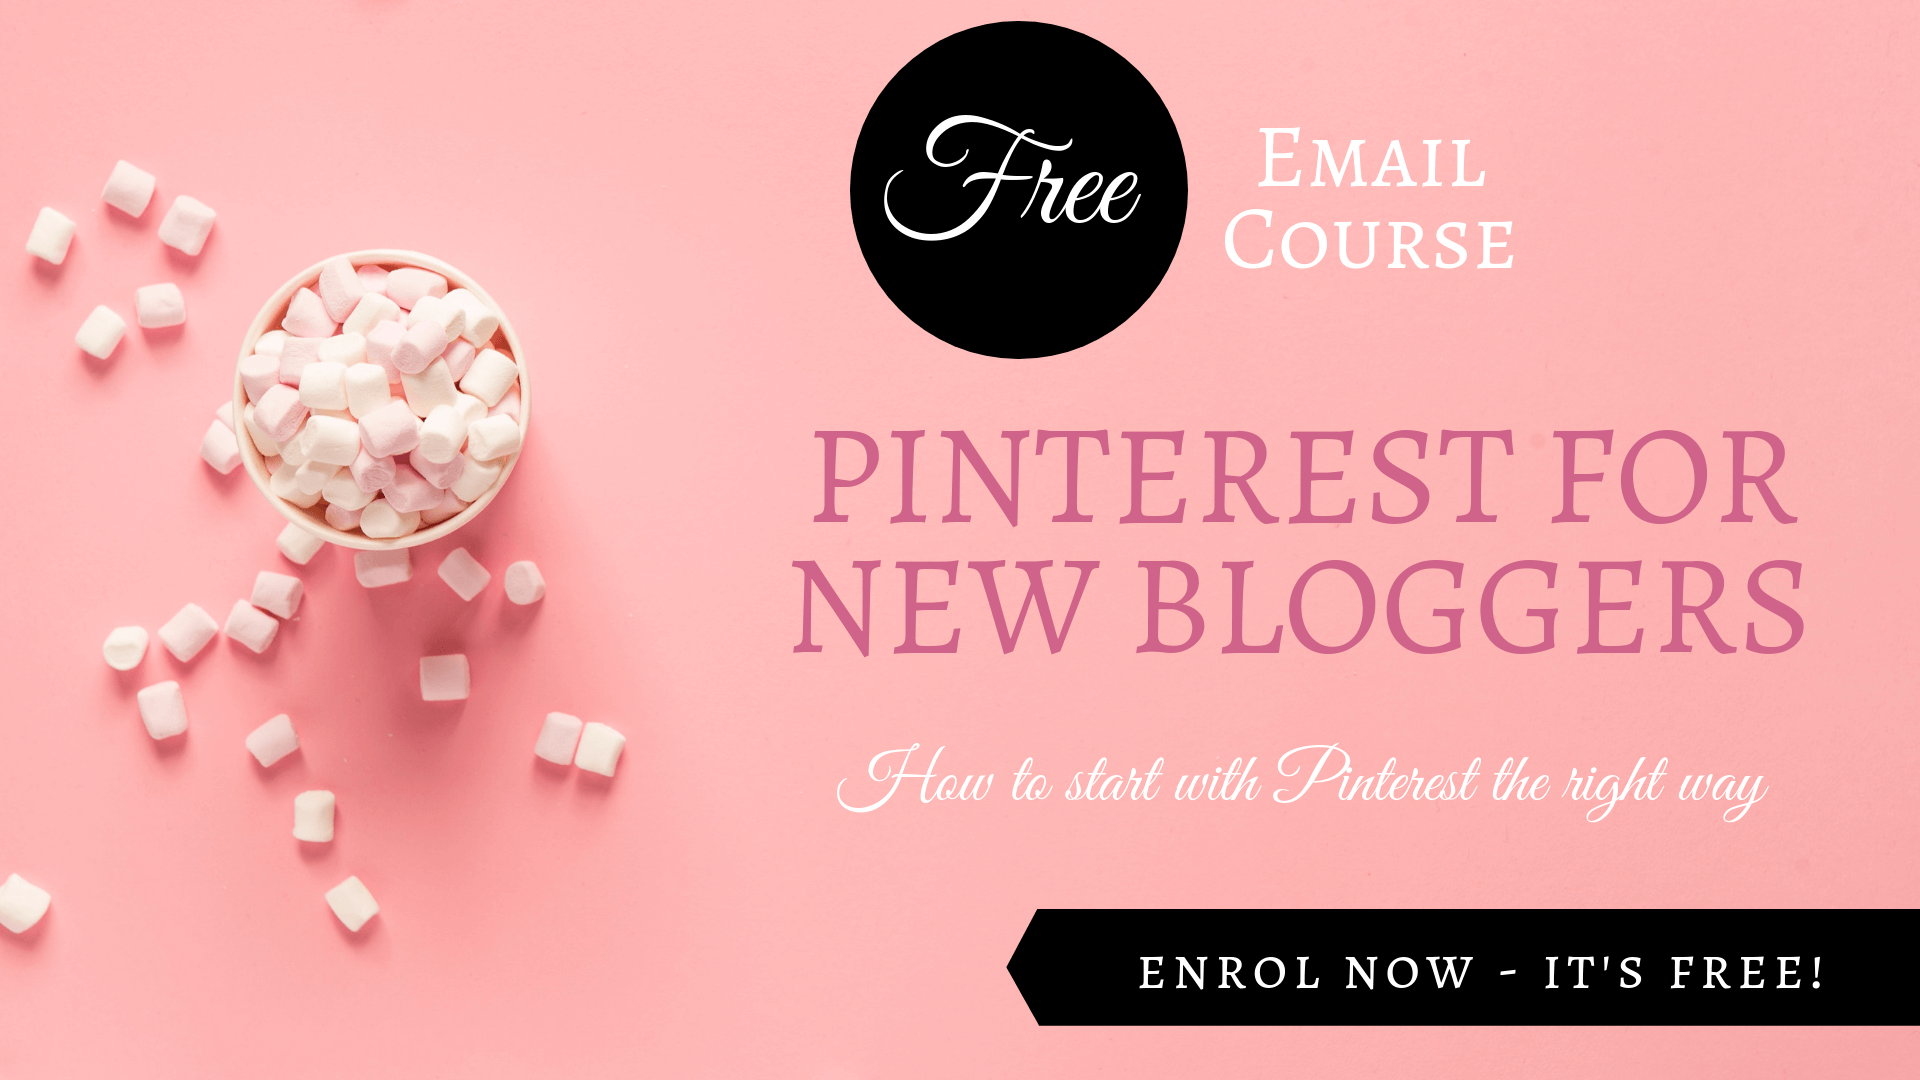 Pinterest for New Bloggers Free course